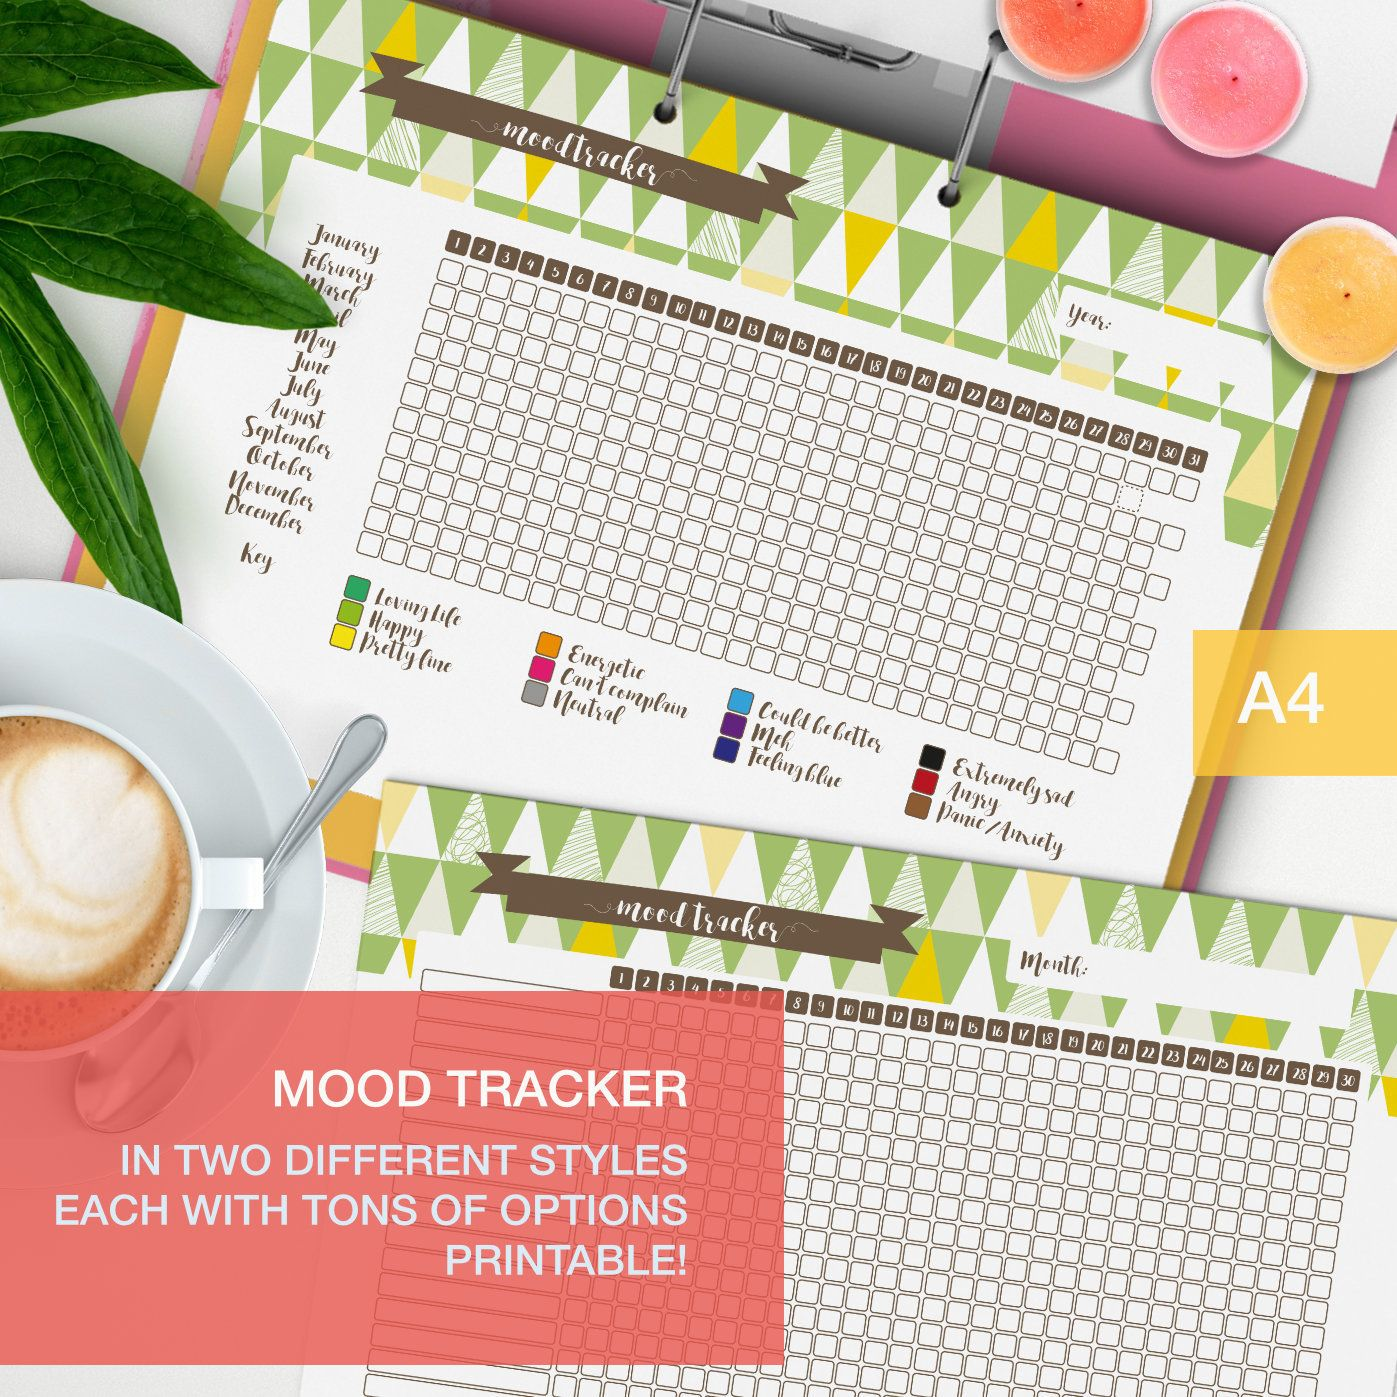 Mood tracker printable! A nice and cute mood chart to keep track of several aspects of your life, perfect for your planner or bullet journal.    #lifeplanner #moodtracker #plannerpage #selfcare #planner